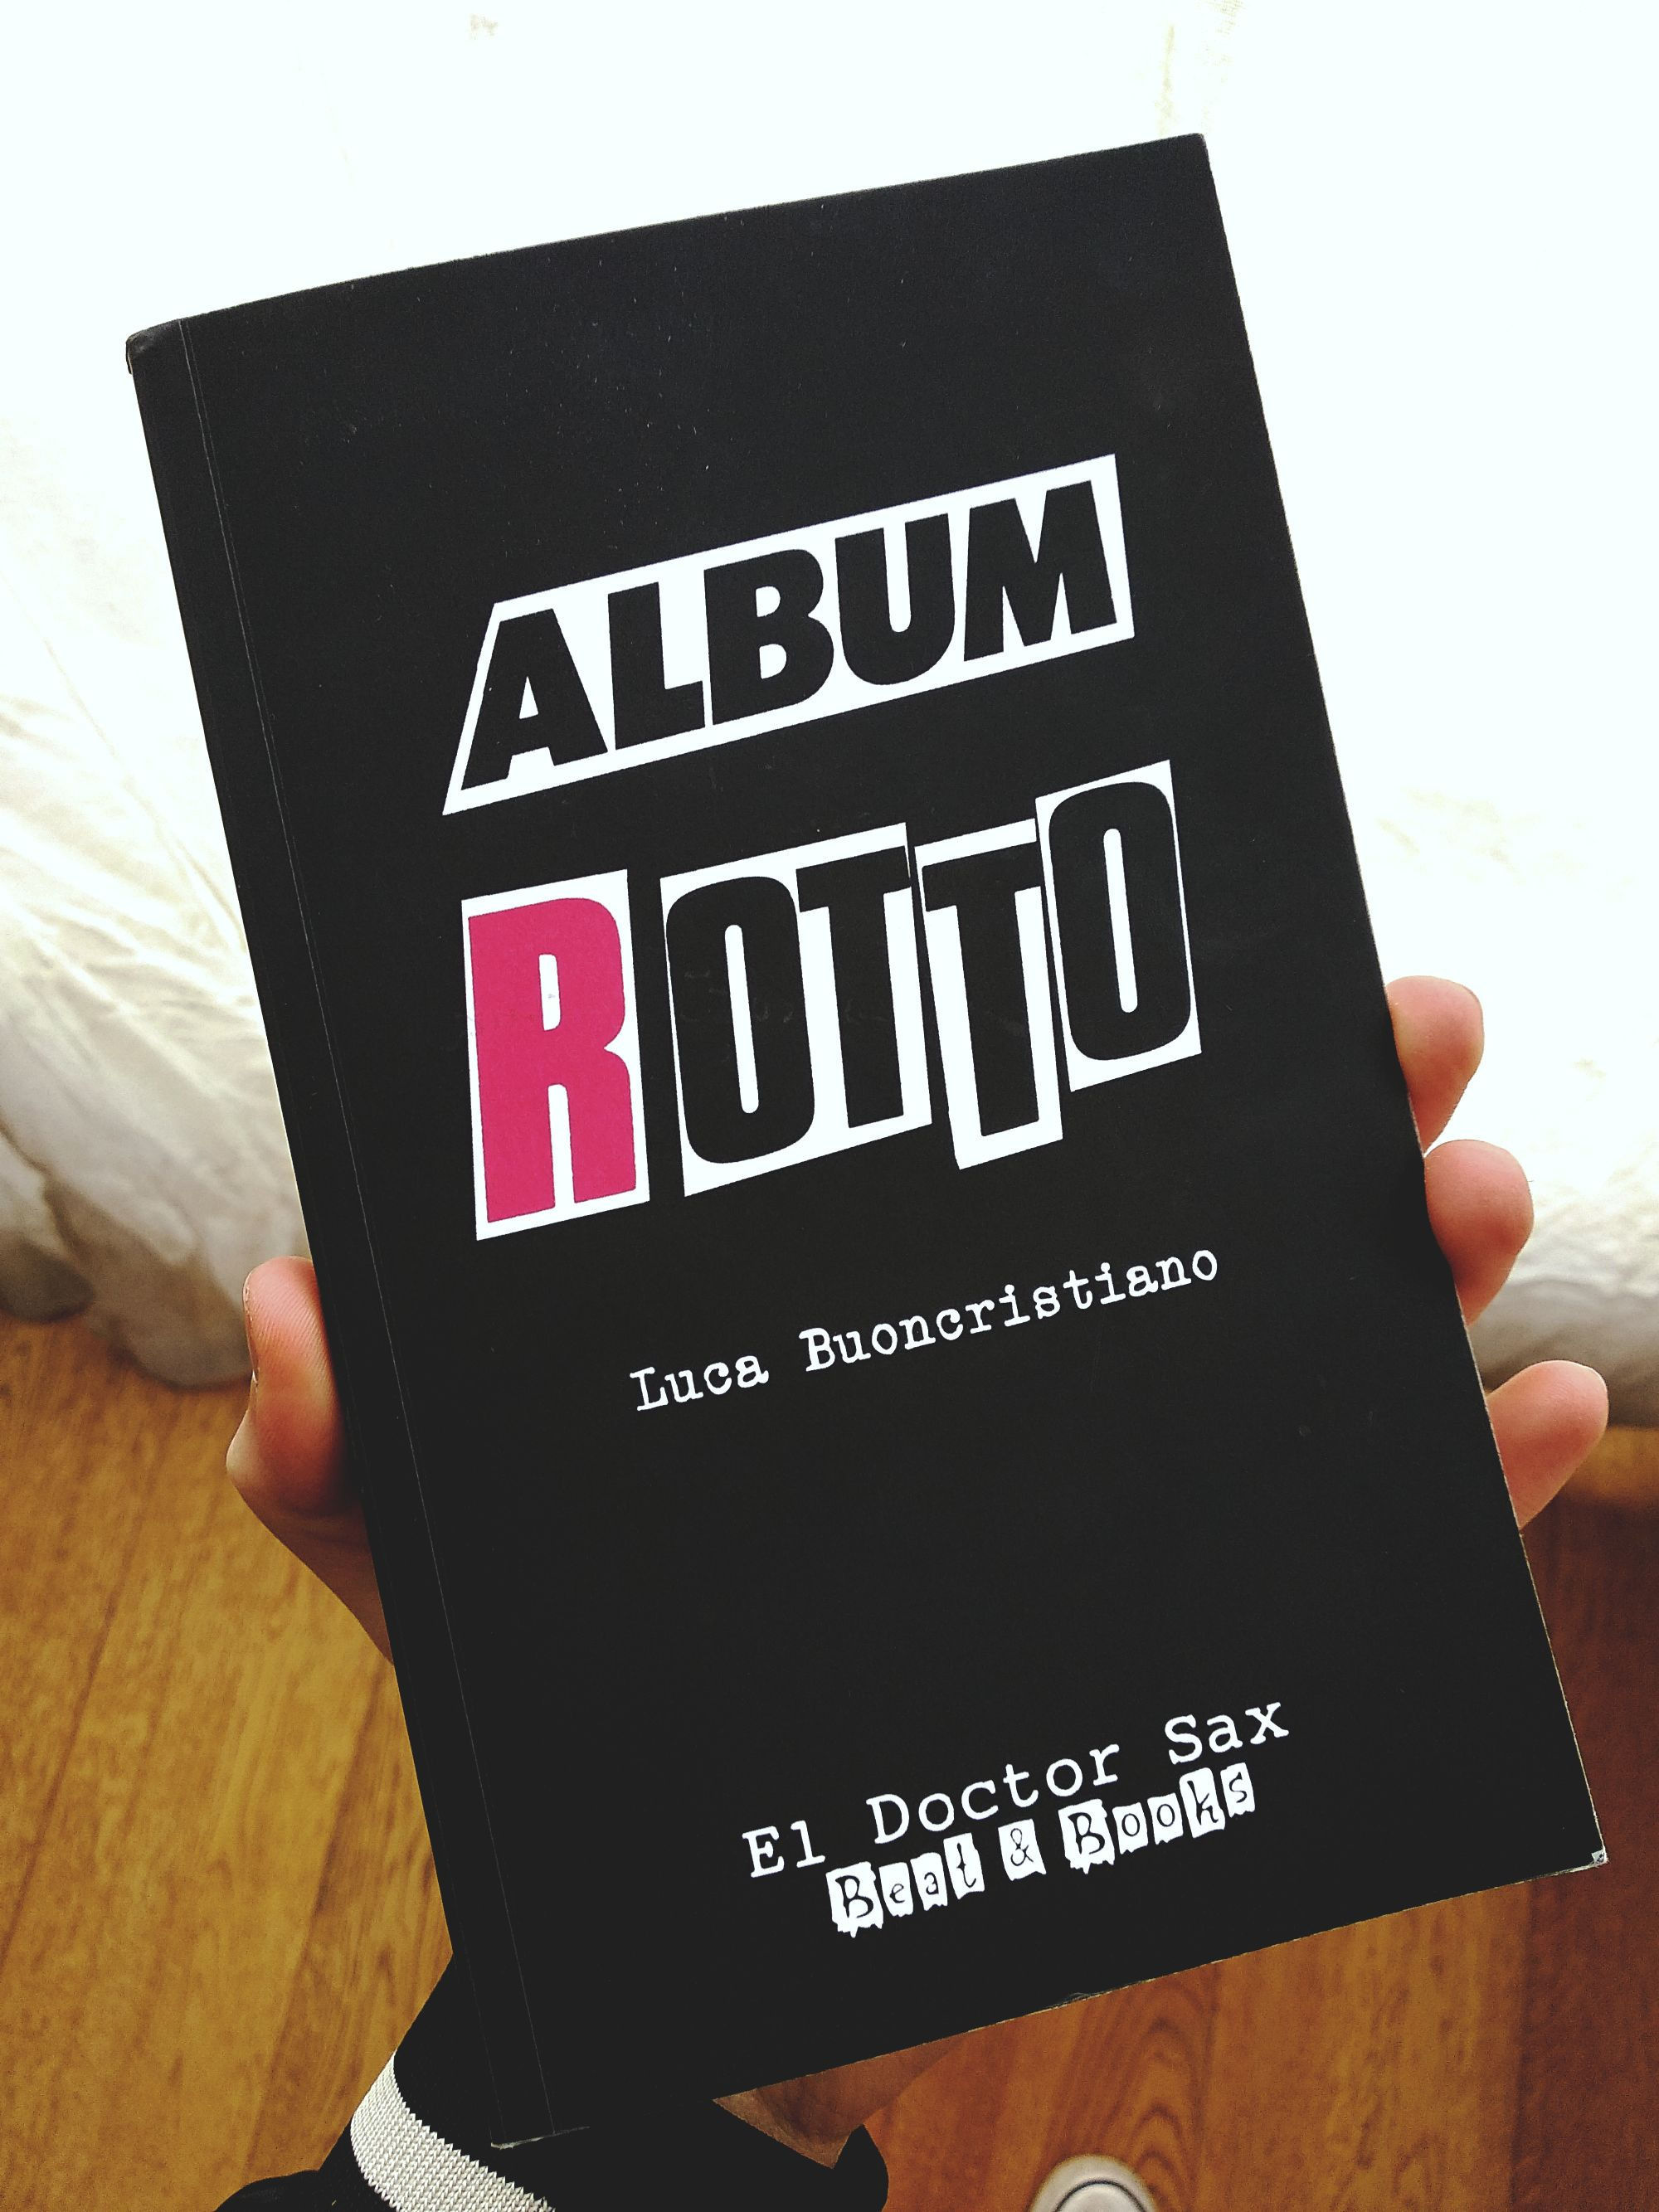 Album Rotto - text